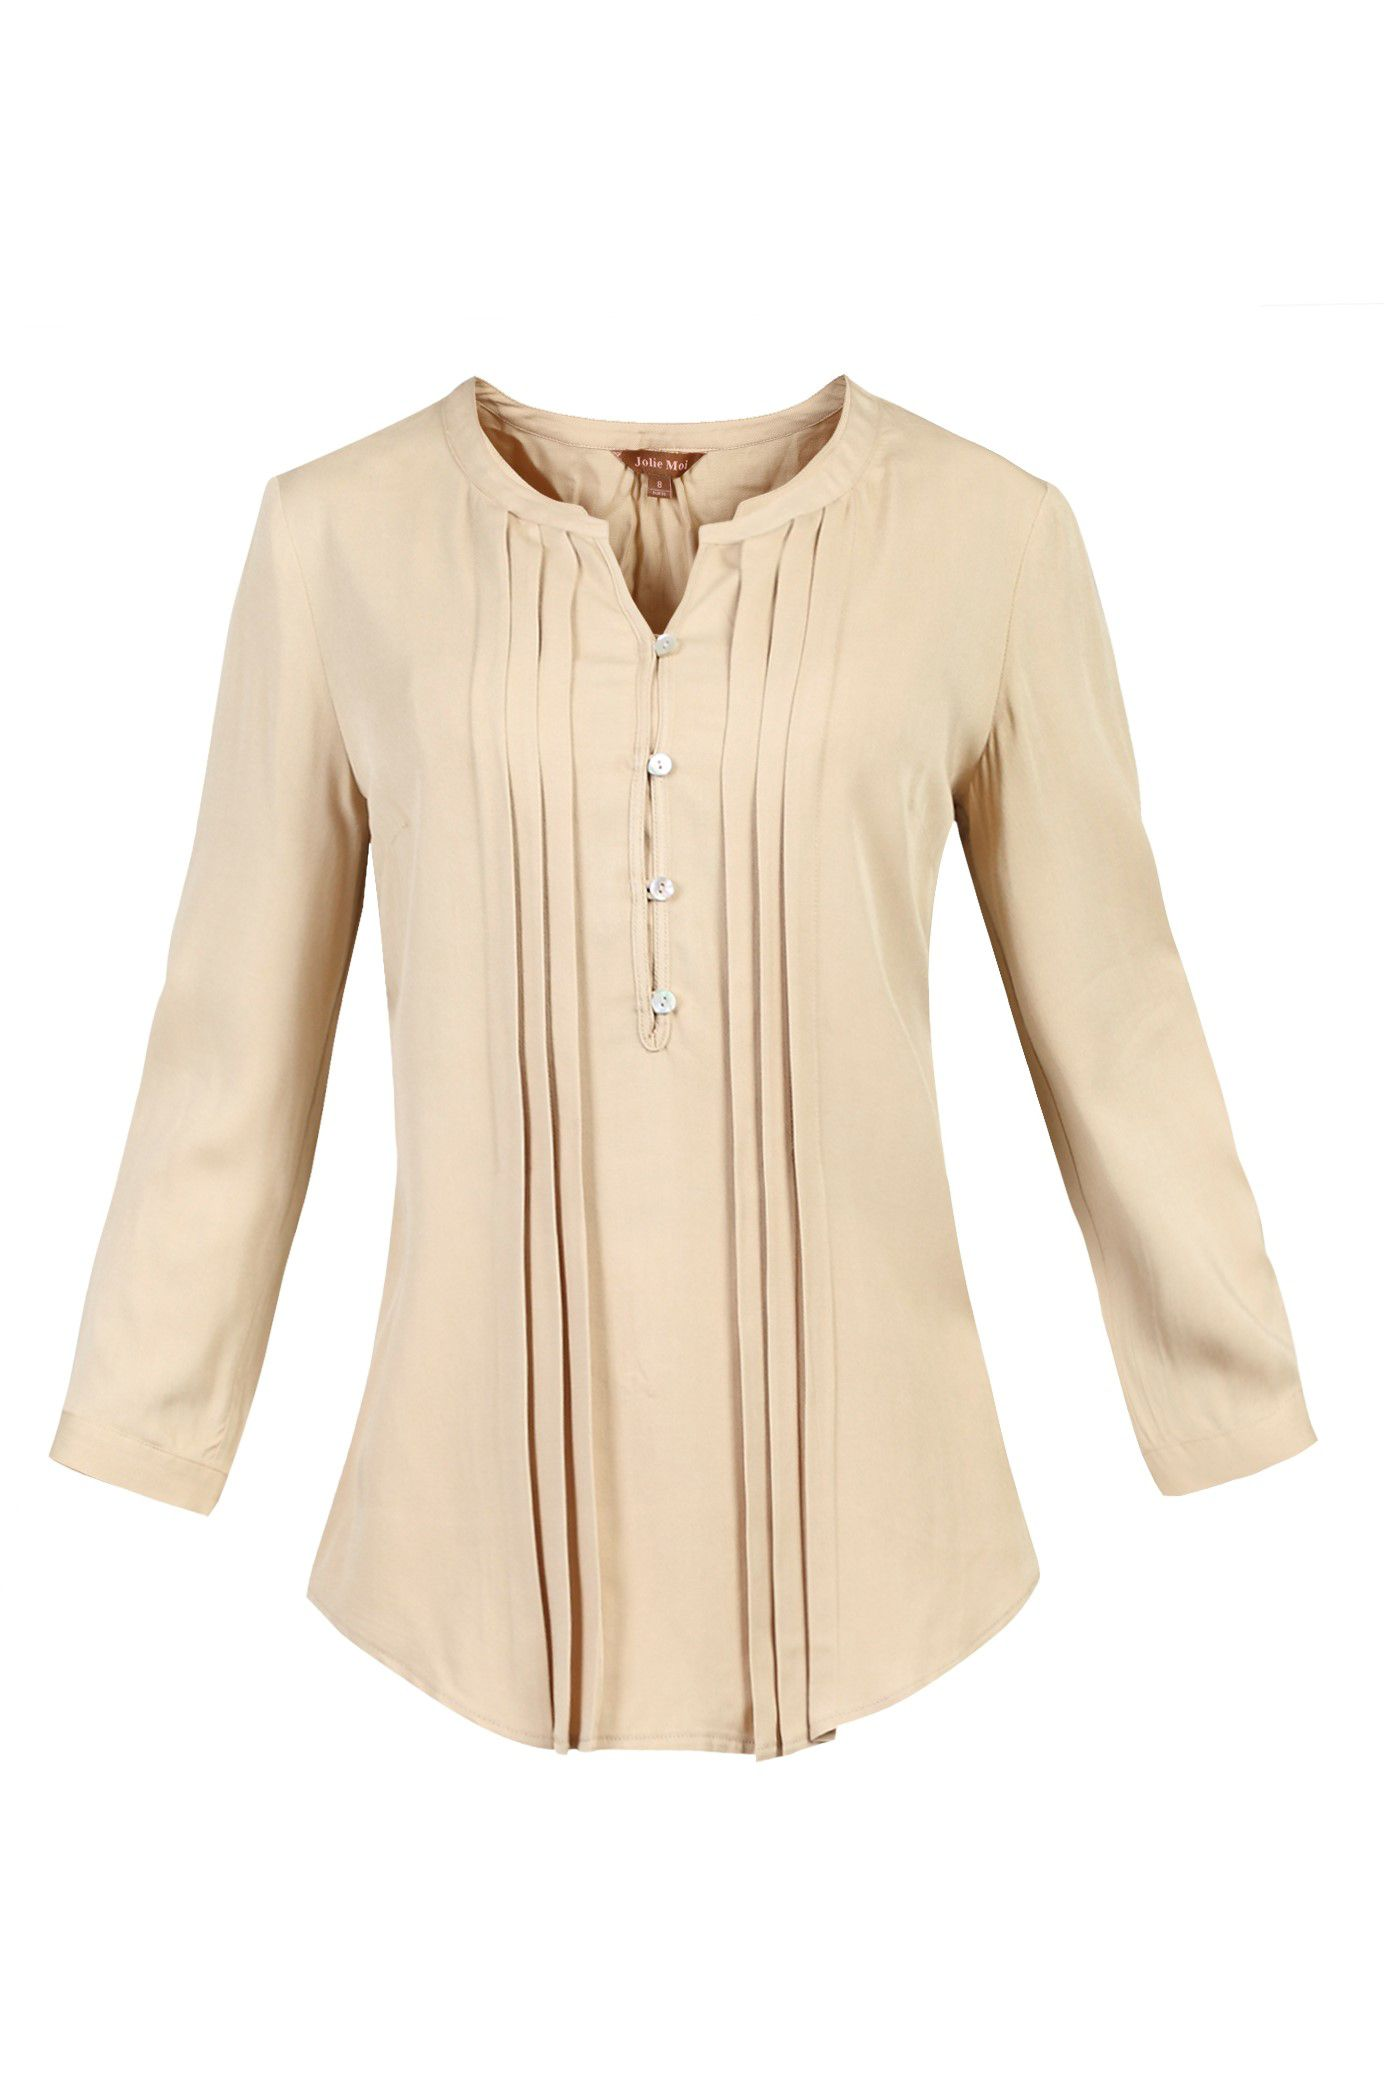 Jolie Moi Button Front Pleated Blouse, Brown